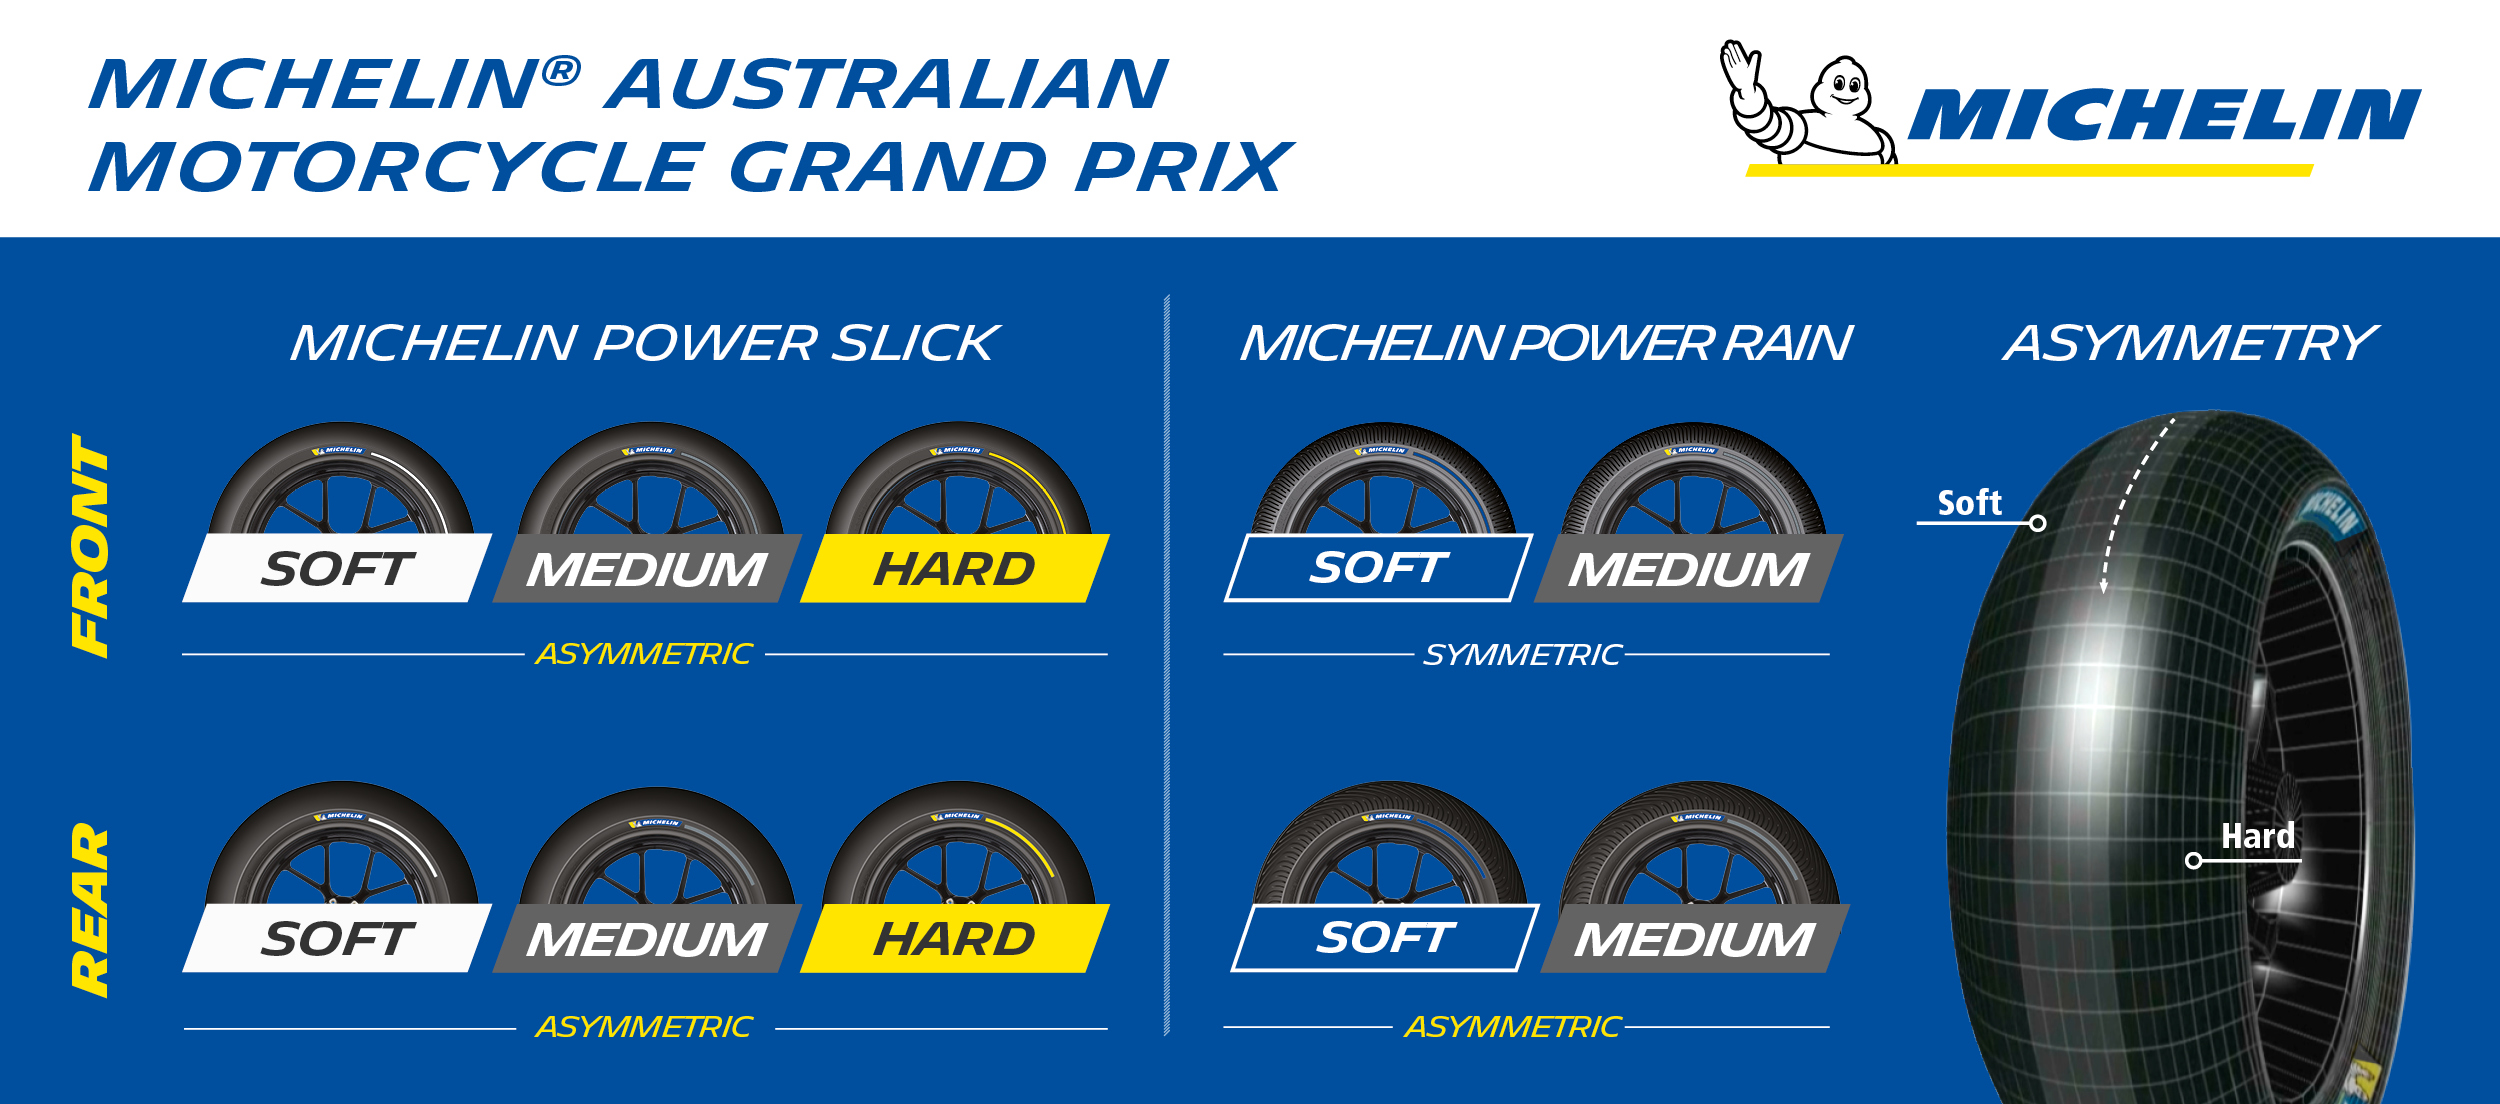 Michelin_AustralianGP_TyreAllocation